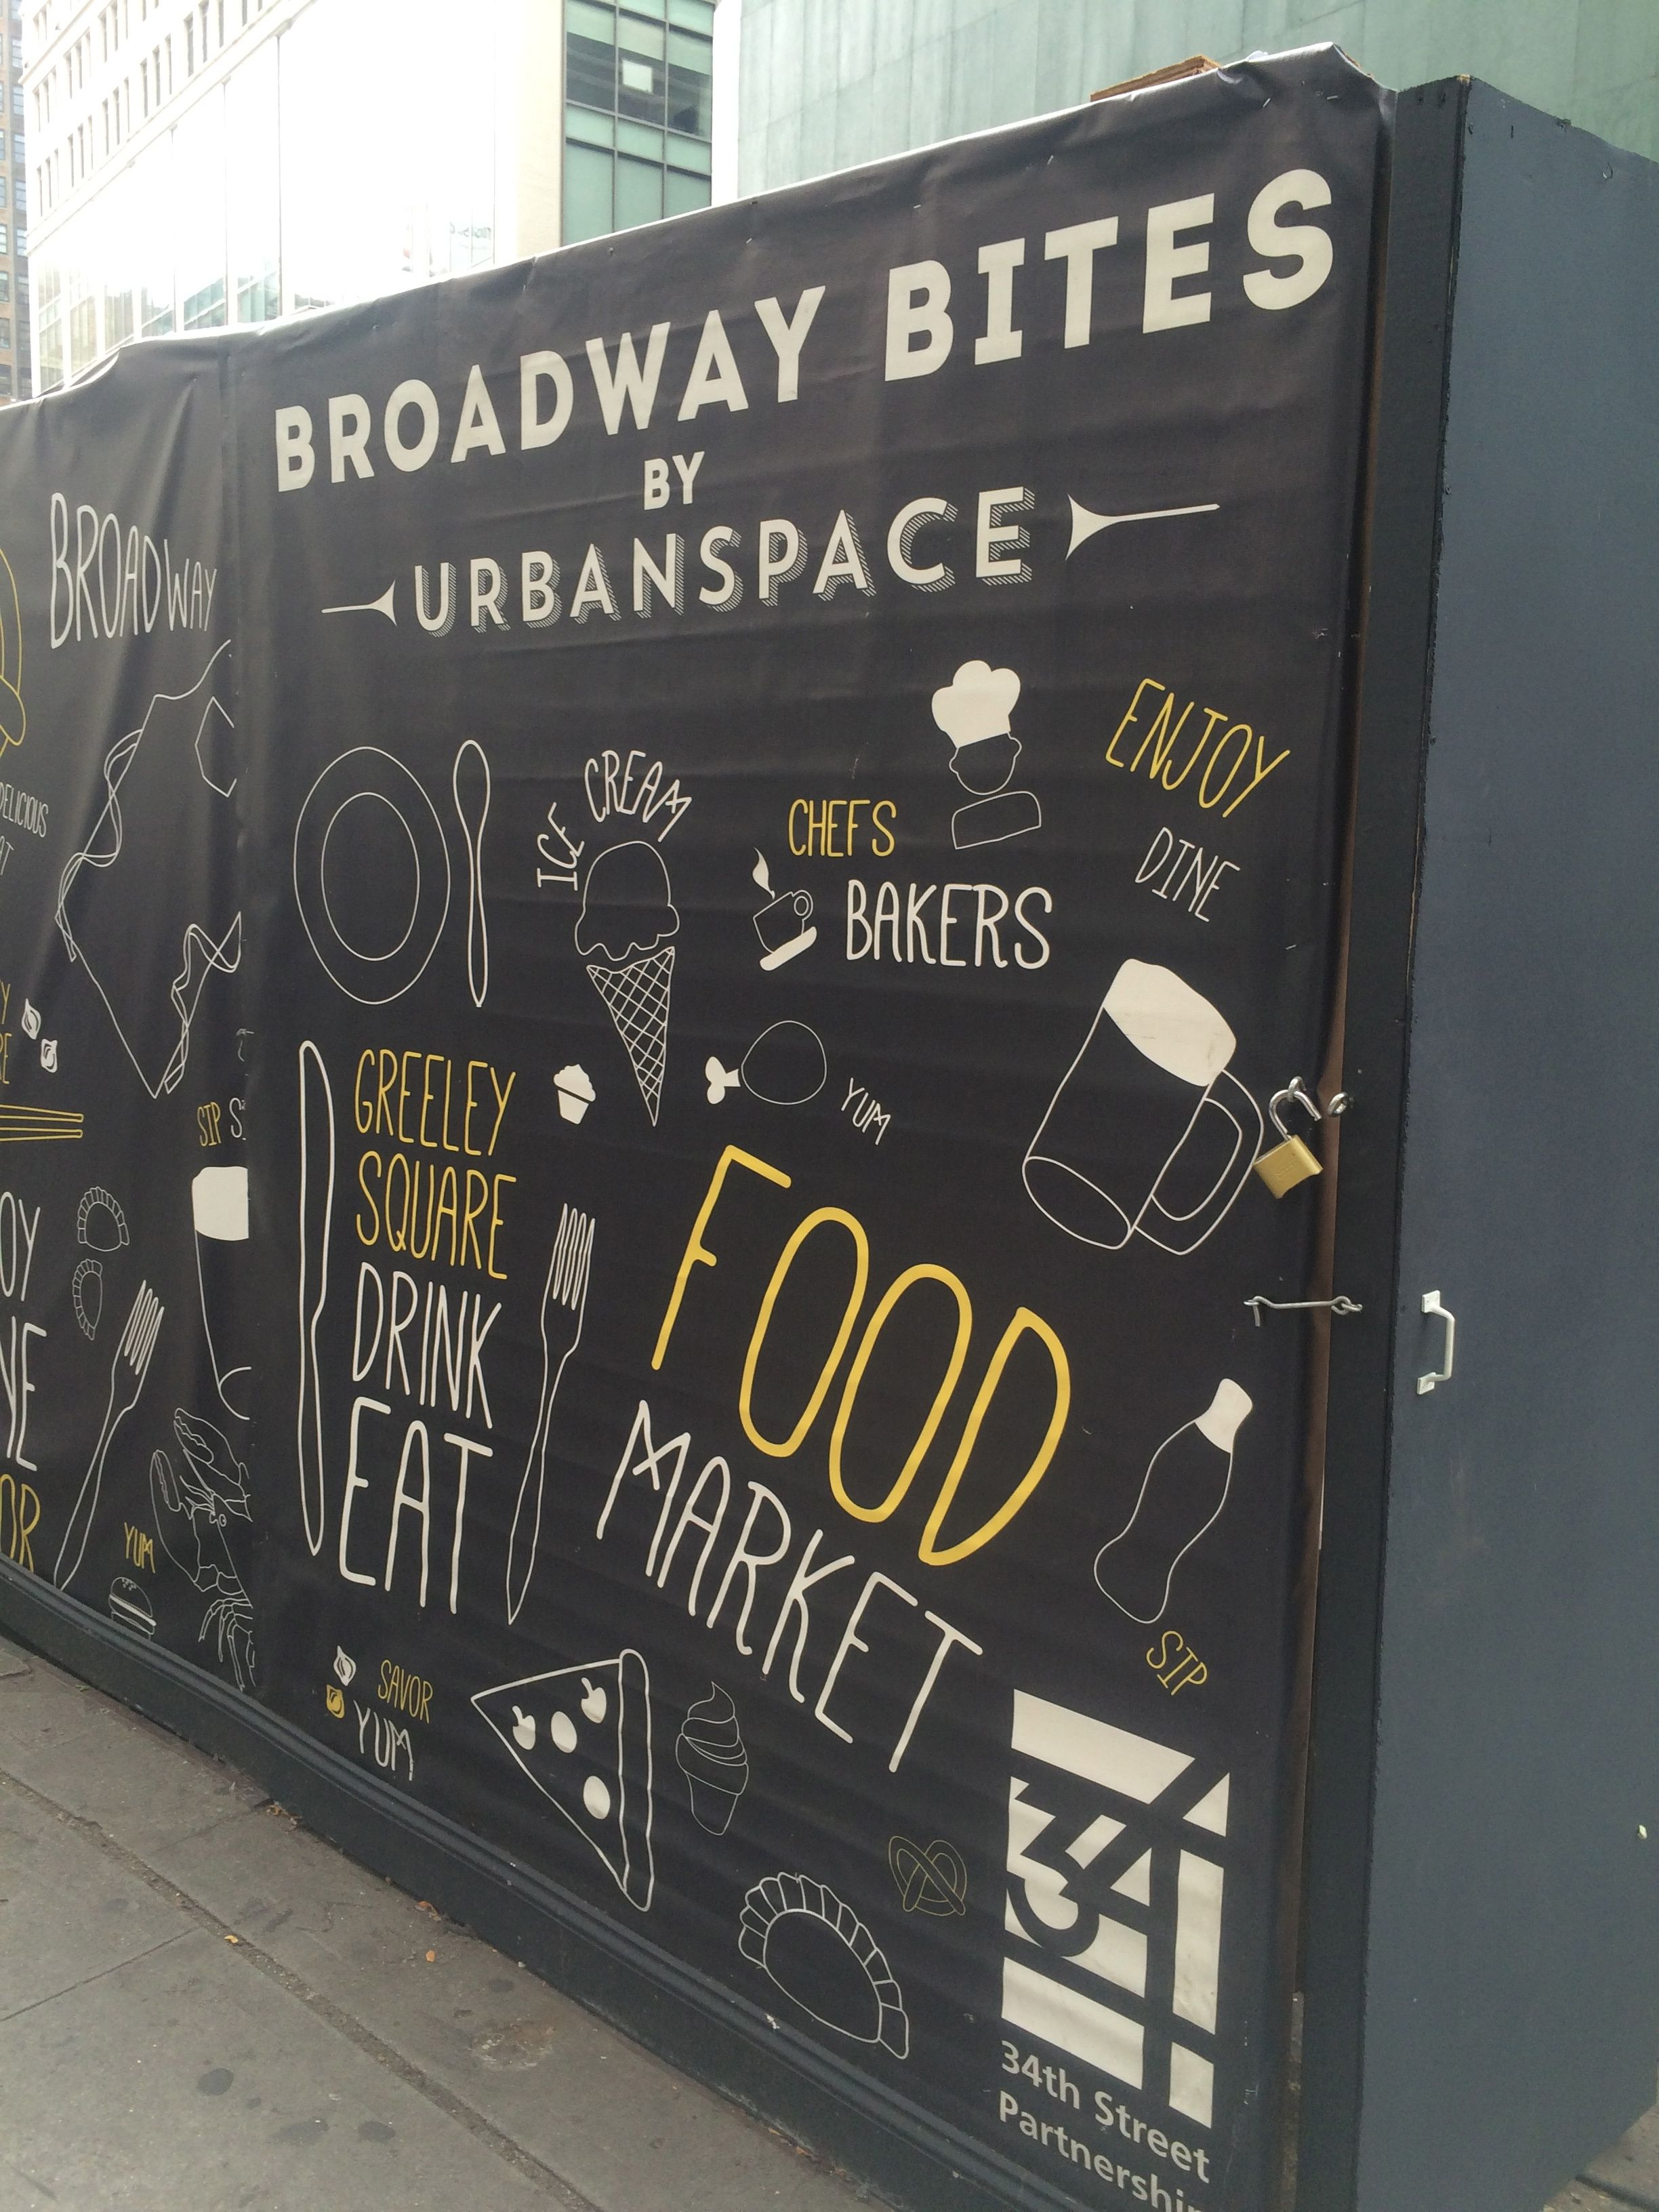 Look Broadway Bites By Urban Space when you are in